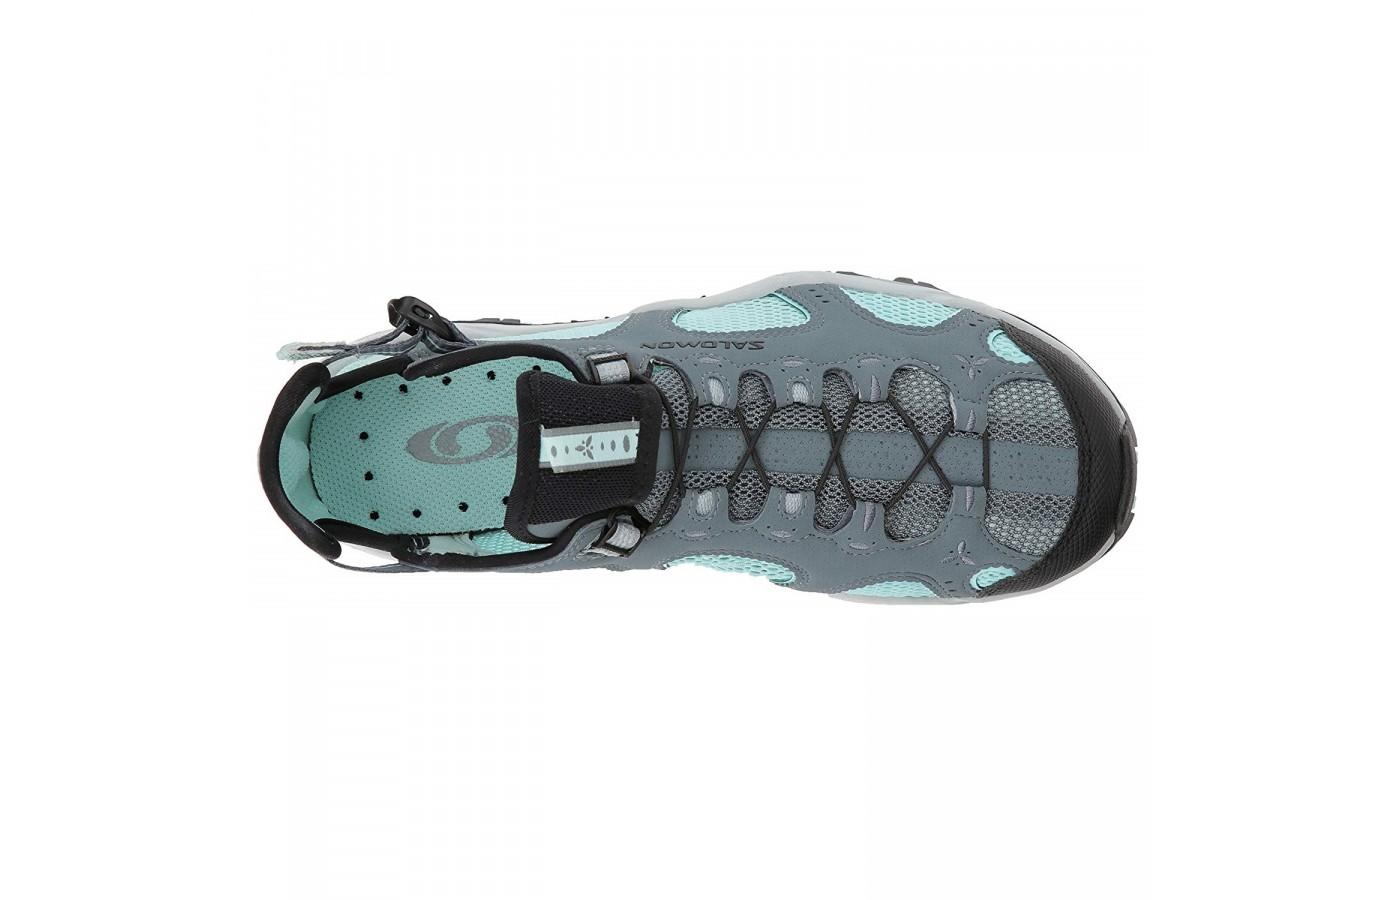 The Salomon Techamphibian 3 offers small drain holes throughout its insole and outsole for better drainage to keep feet dry even when in and out of water.